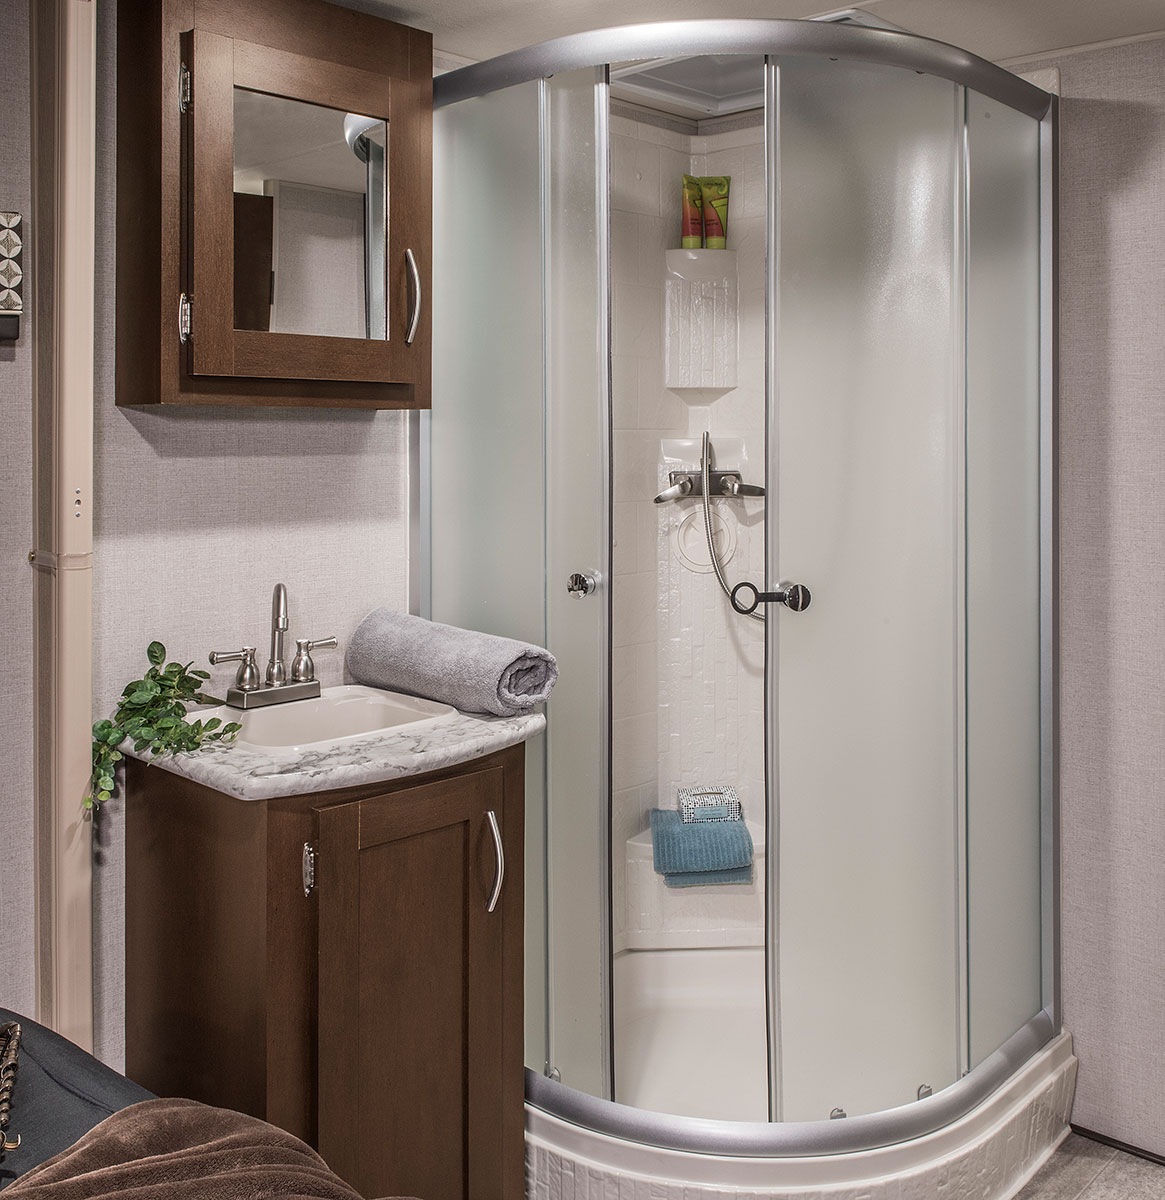 KZ Sportsmen Fifth Wheel bathroom